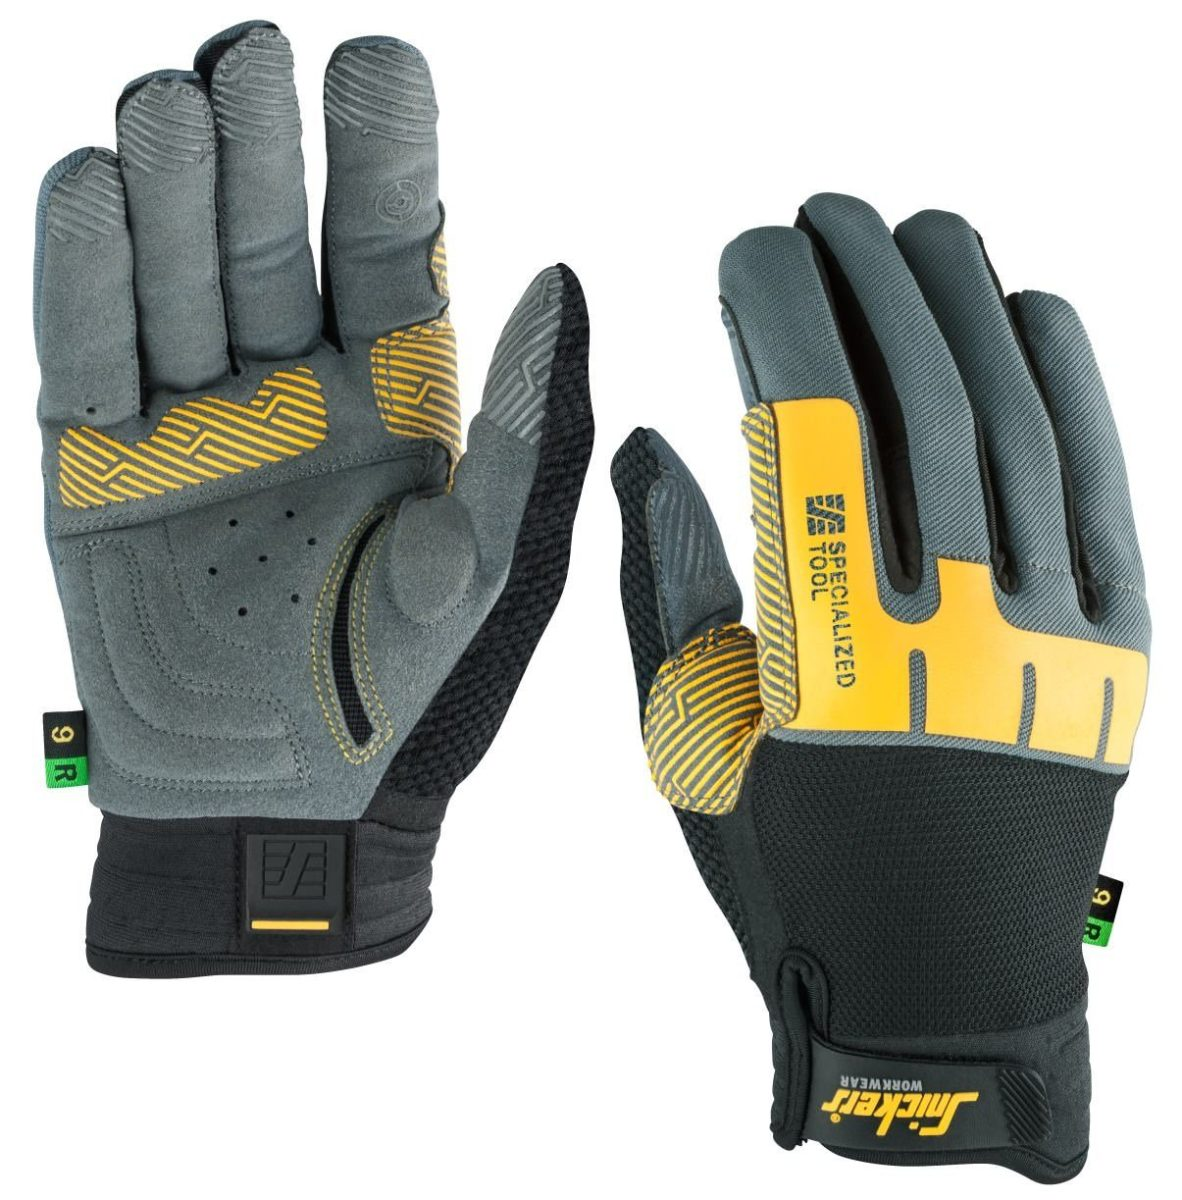 Snickers 9598 Specialised Tool Glove, Right (Single)